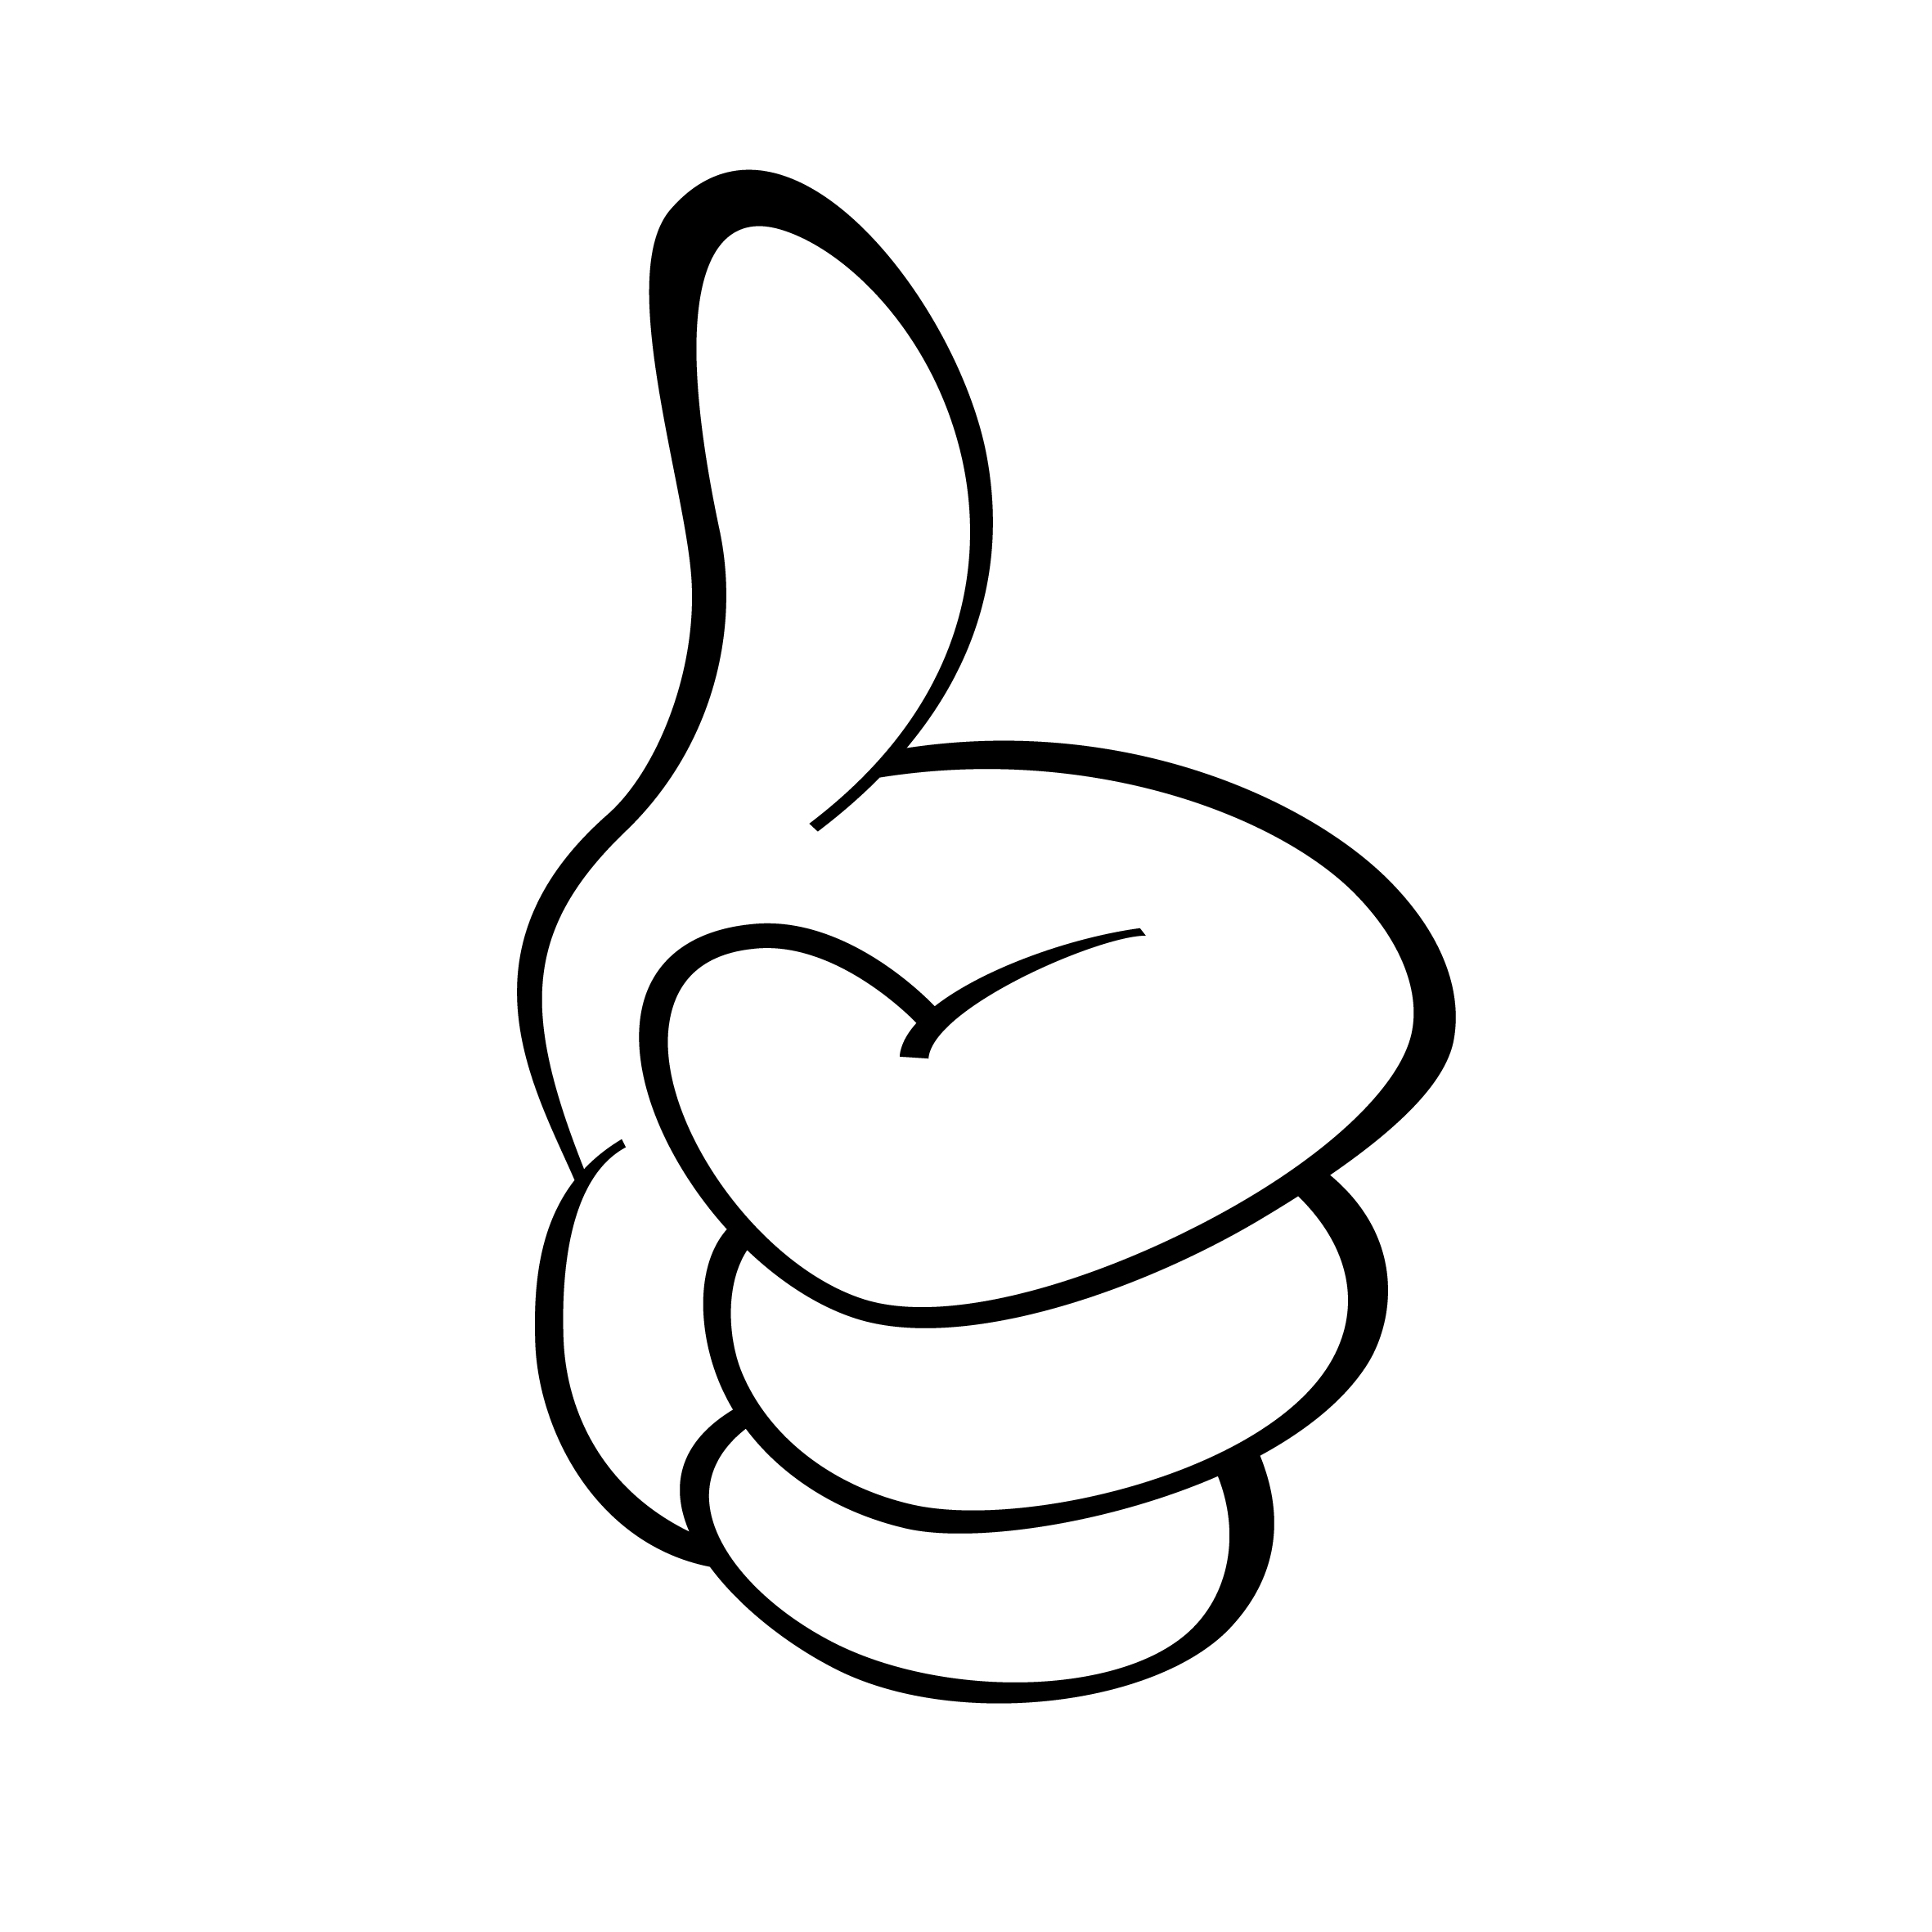 2 thumbs up clipart transparent download This Guy Two Thumbs Up Clipart - Clipart Kid transparent download